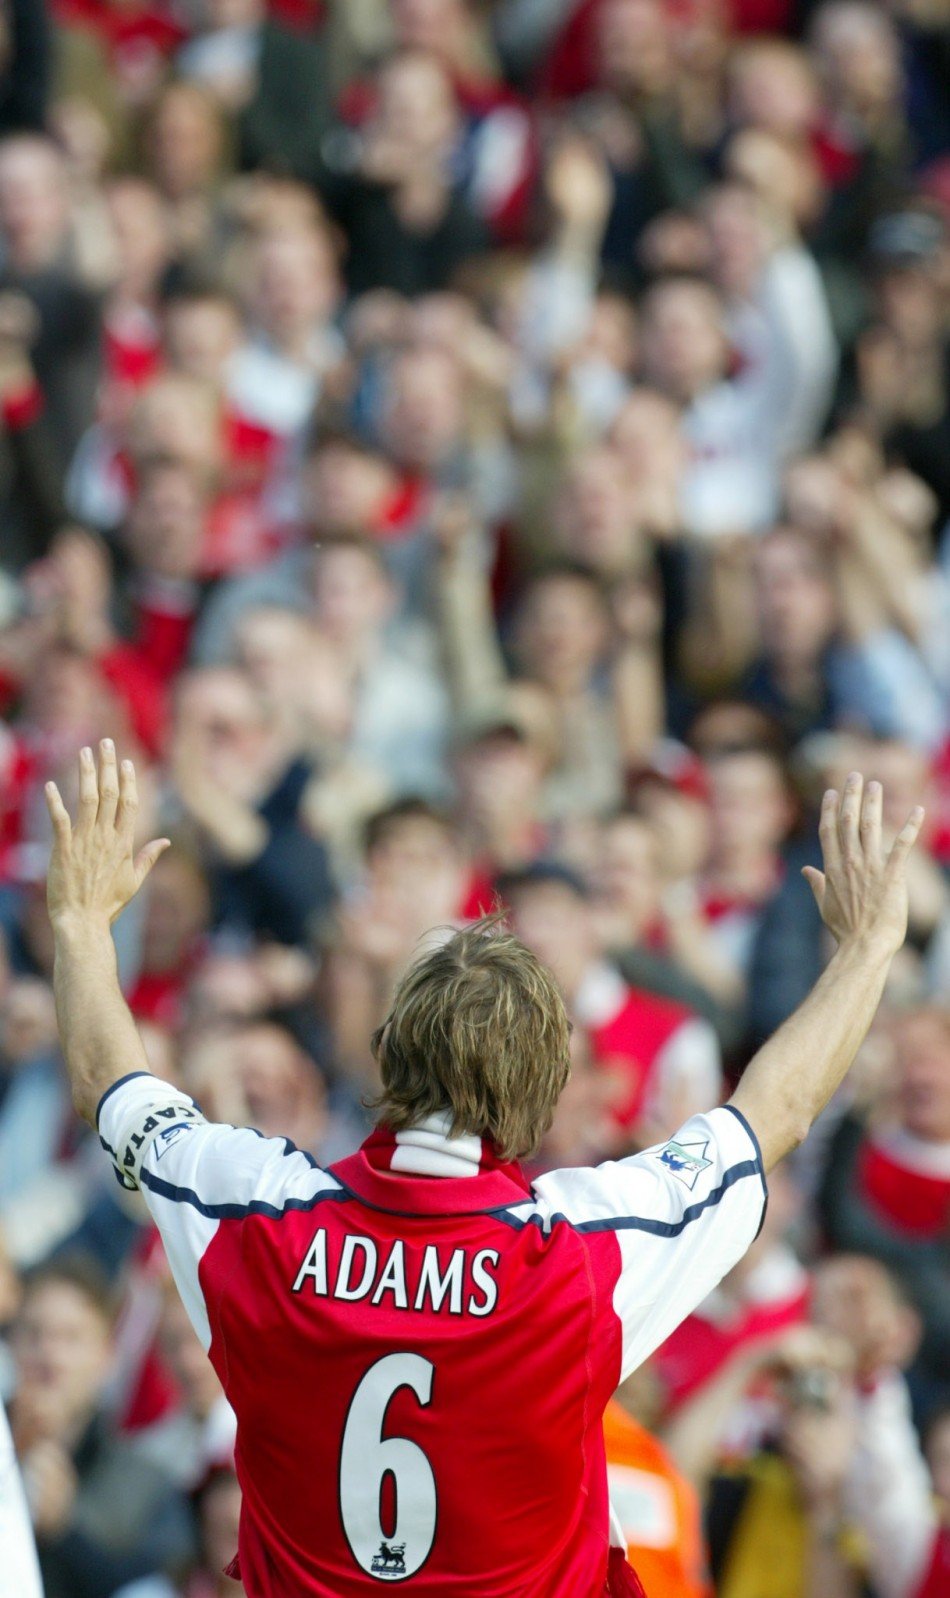 Tony Adams was a revered leader for club and country despite his off-field problems